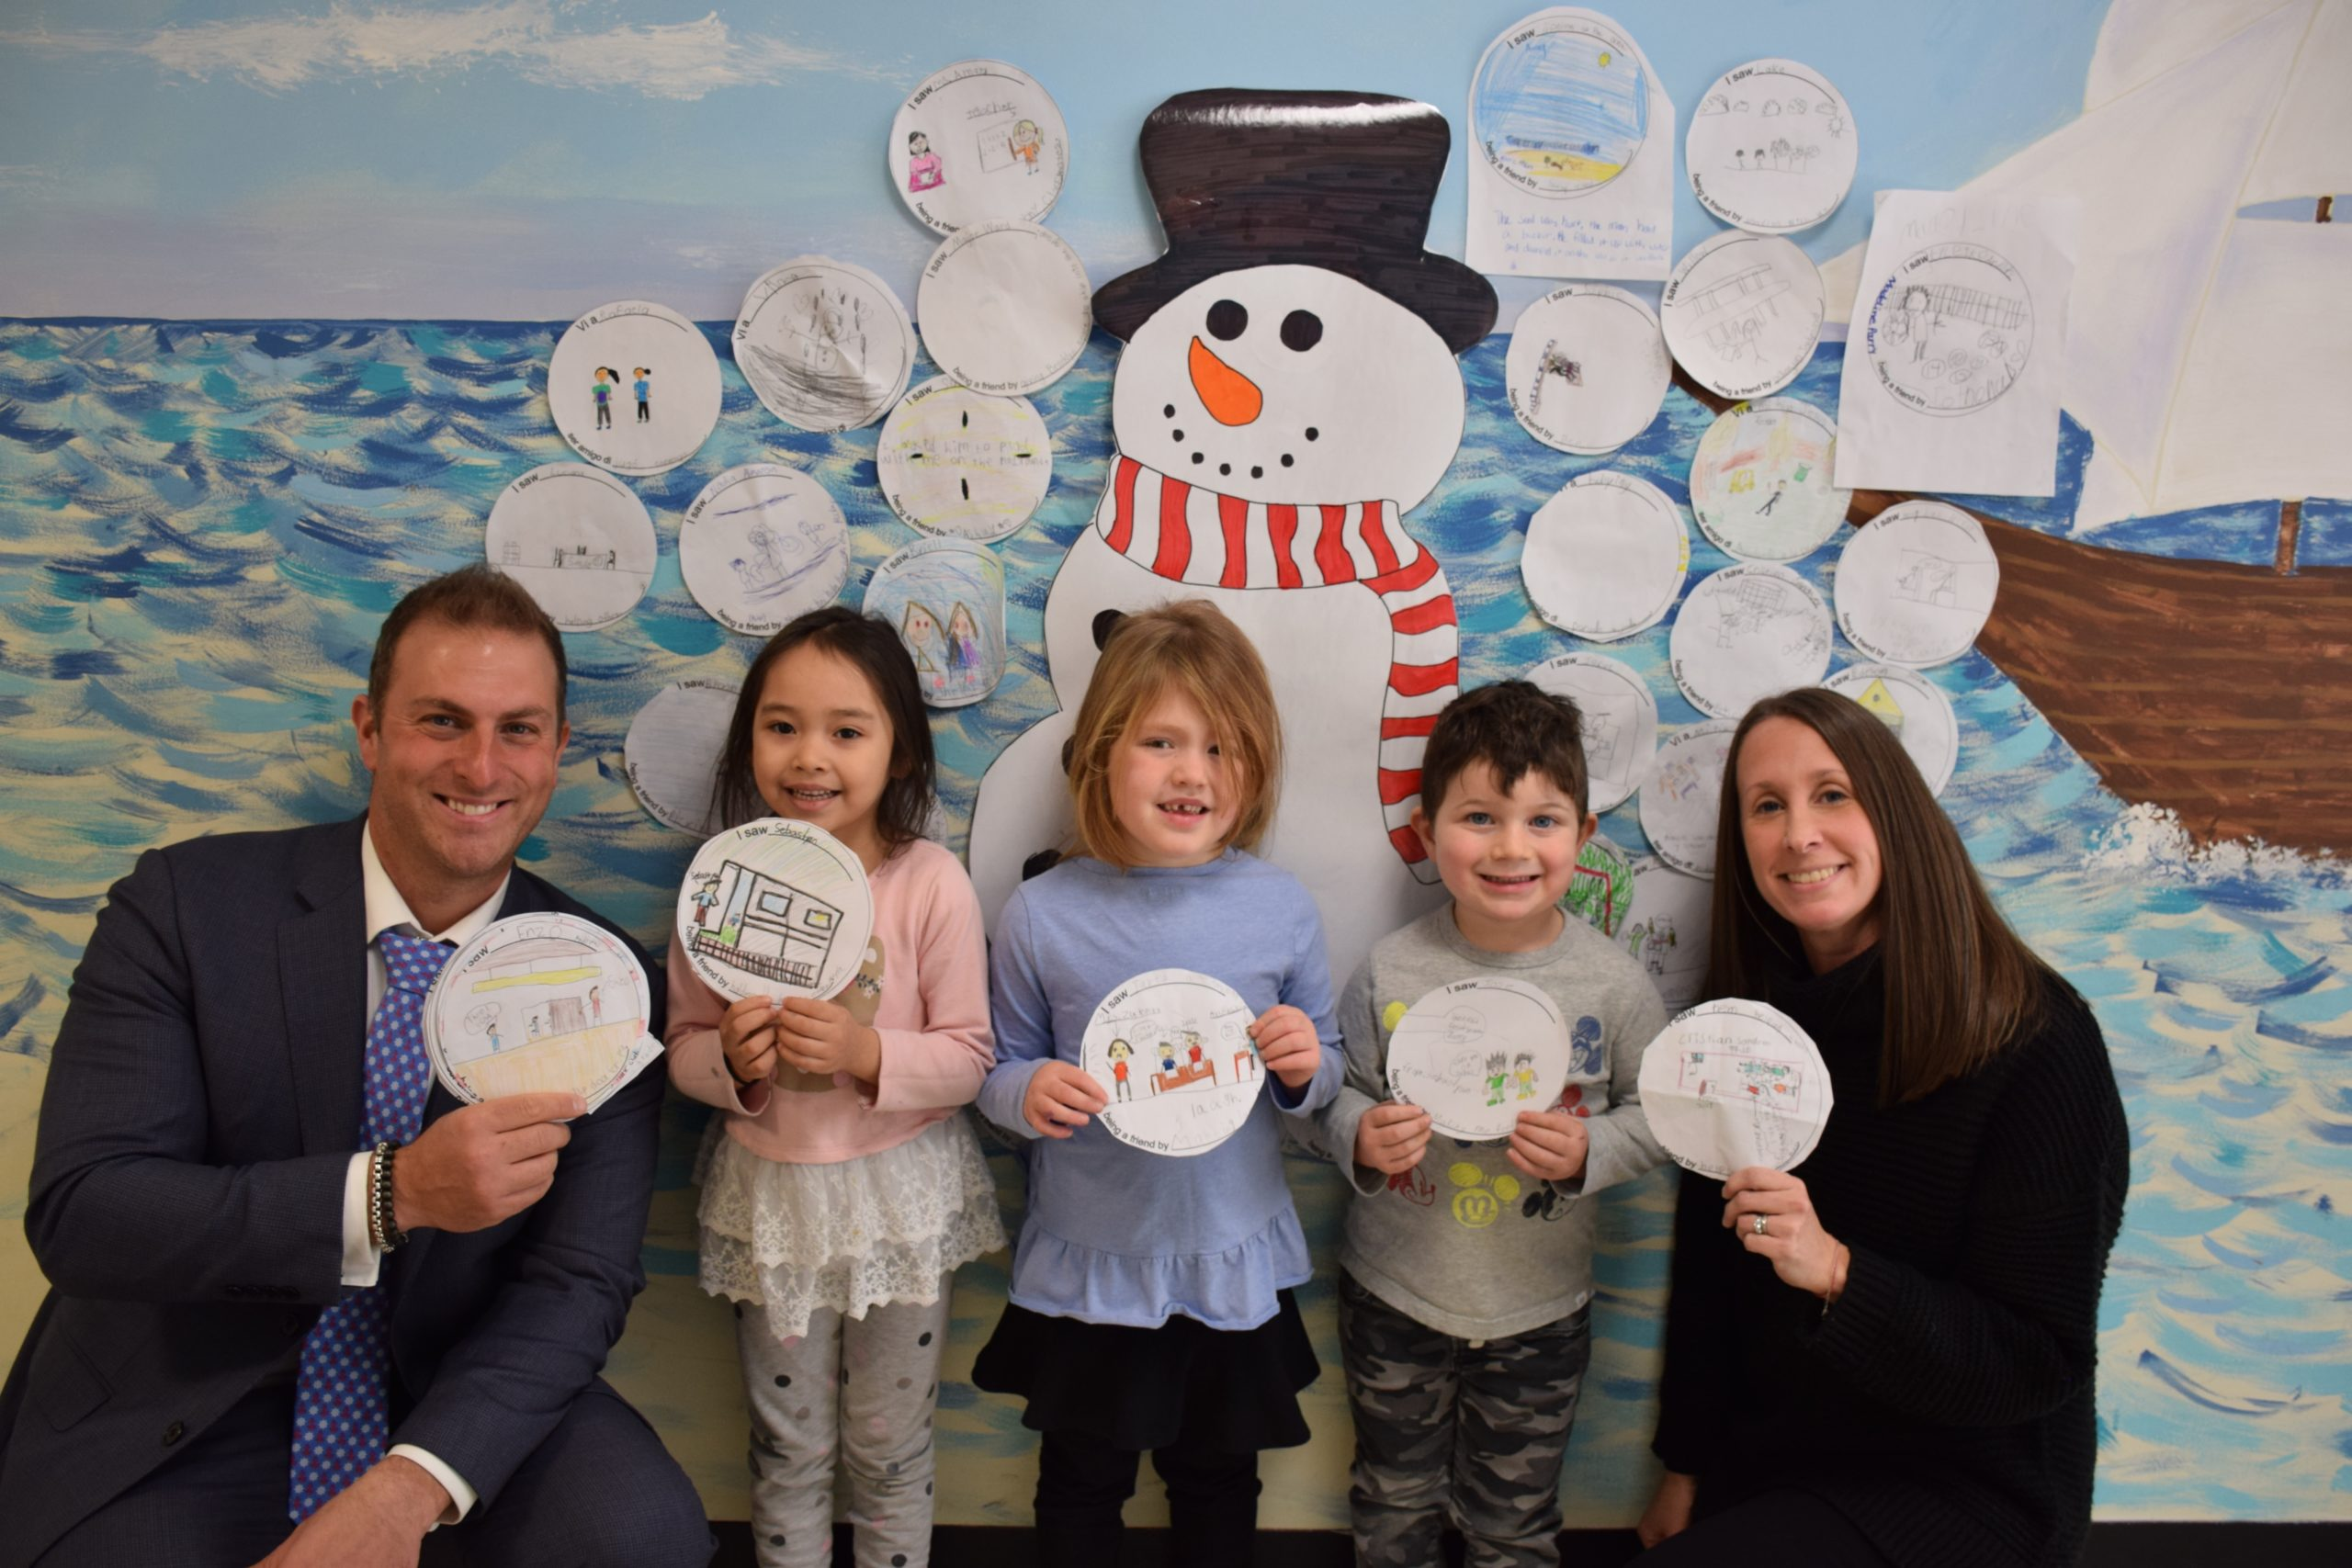 Southampton Elementary School students posed with Sammy the Snowman, the centerpiece of a friendship initiative at the school. From left,Assistant Principal Jeremy Garritano, kindergartners Katherine Choy, Eleanor McGowin and Jack Brody, and teacher Sara Drohan.